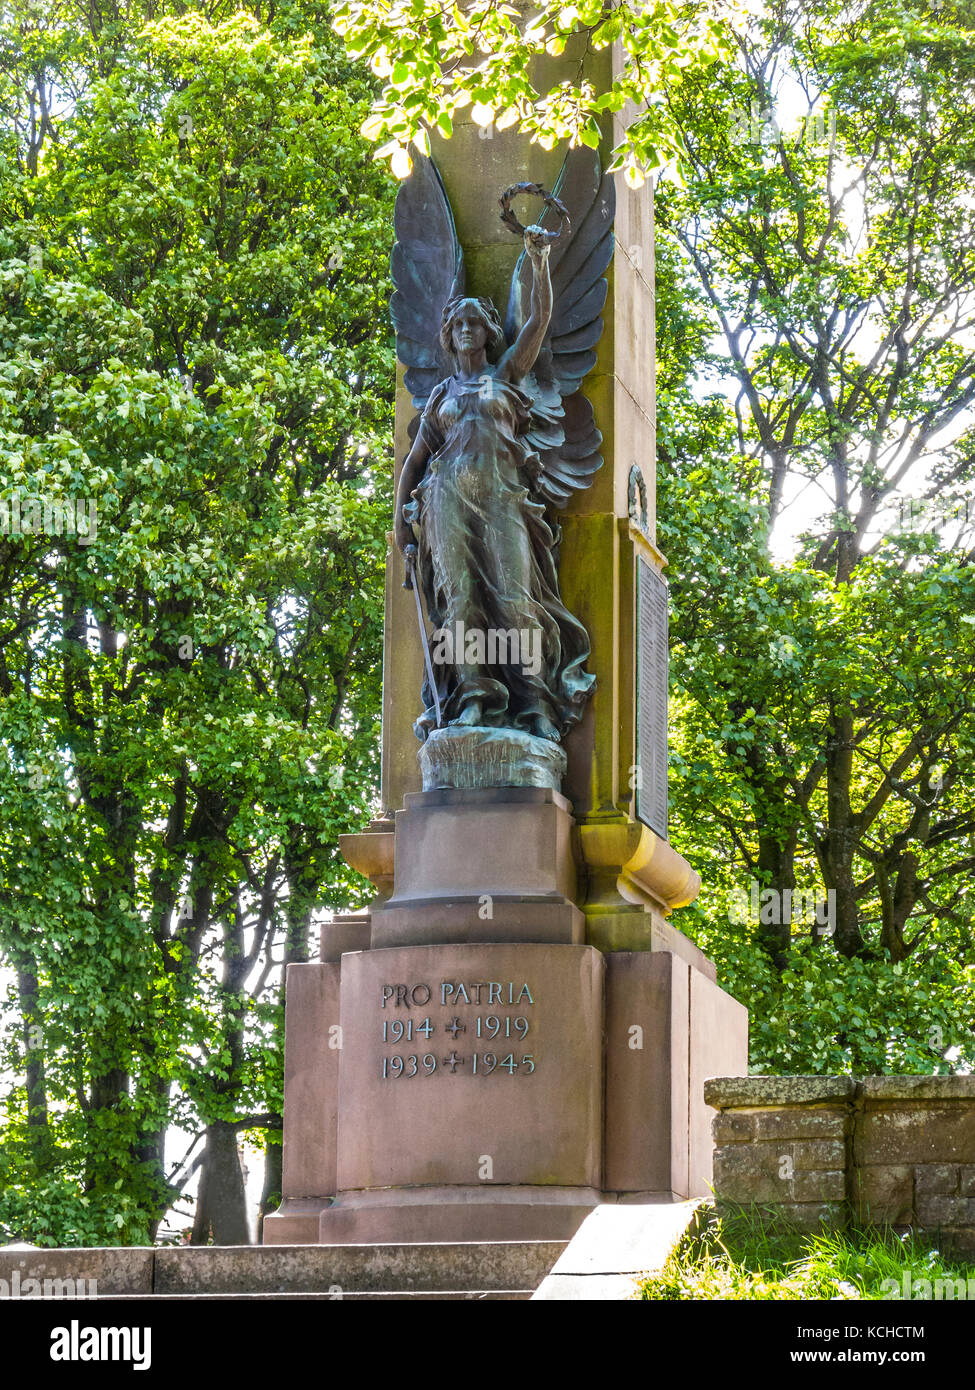 War Memorial with Roslyn's Sculpture, The Slopes, Buxton, Derbyshire - Stock Image